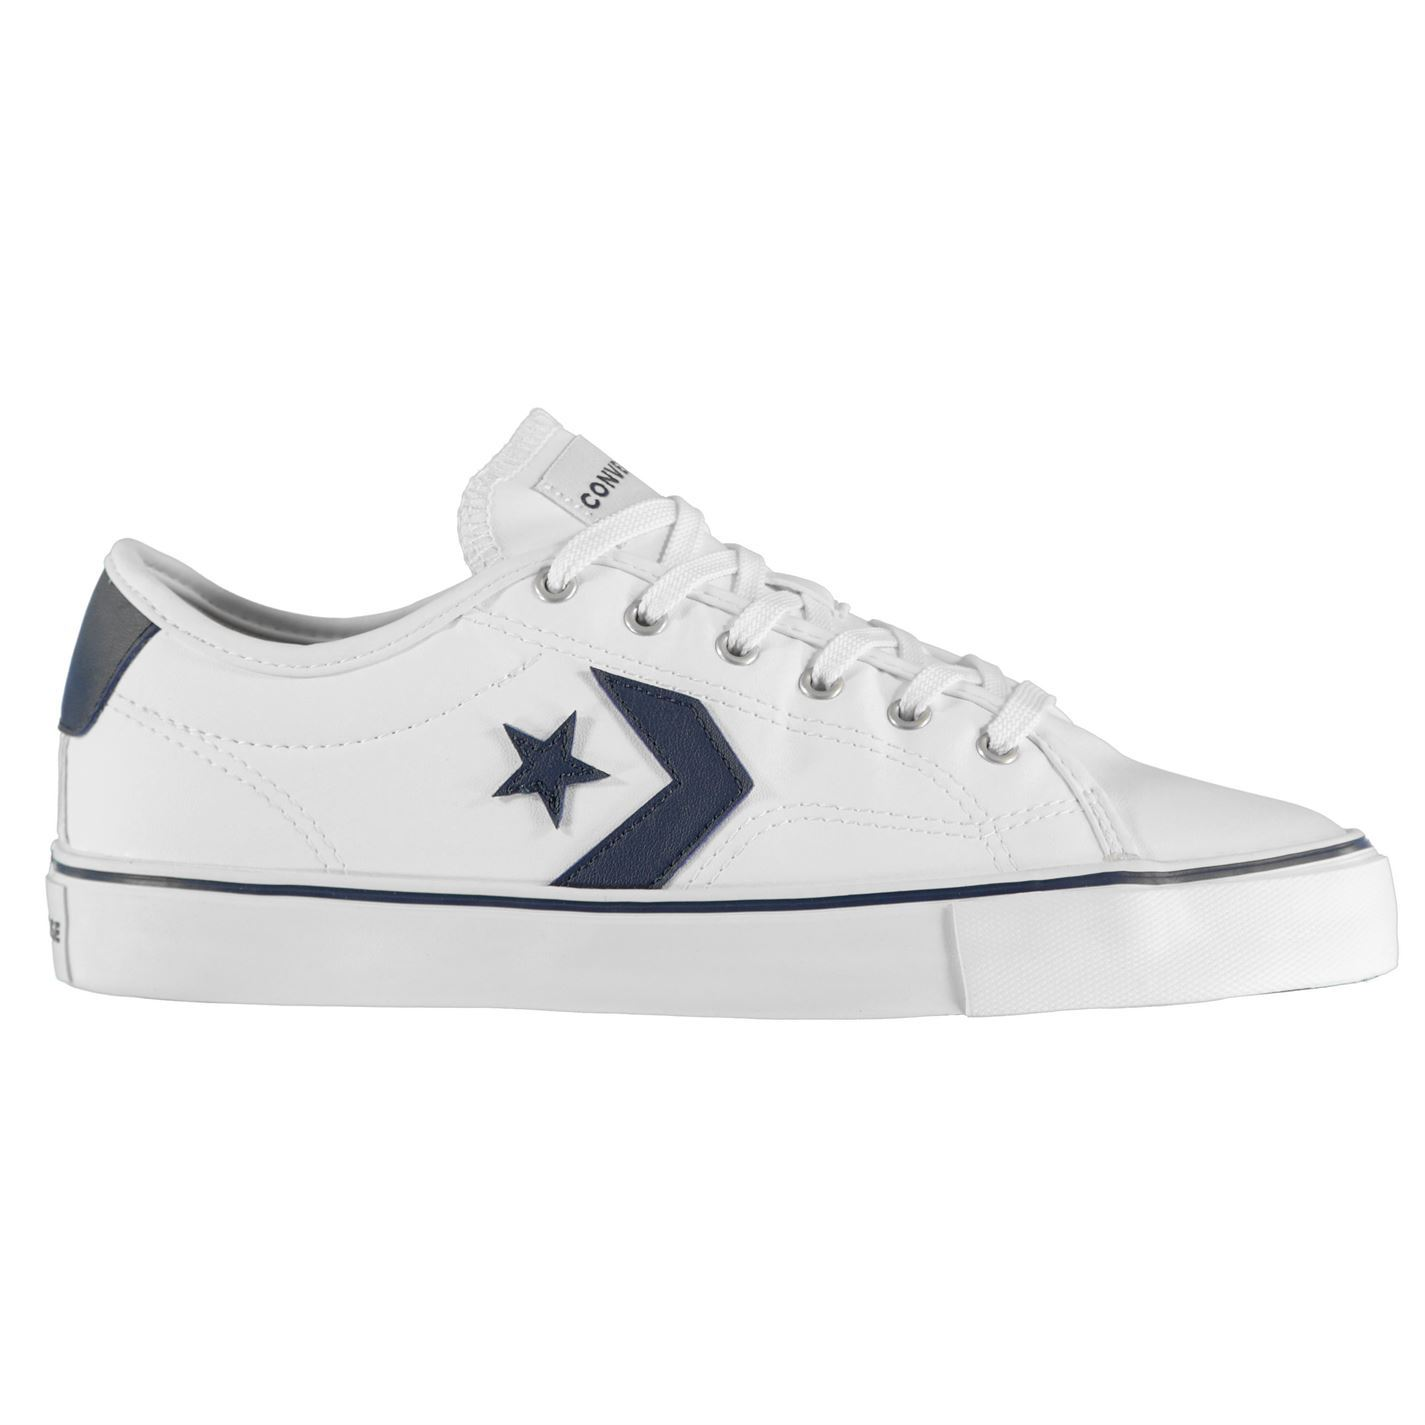 Converse-Ox-Replay-Low-Baskets-Pour-Homme-Chaussures-De-Loisirs-Chaussures-Baskets miniature 12